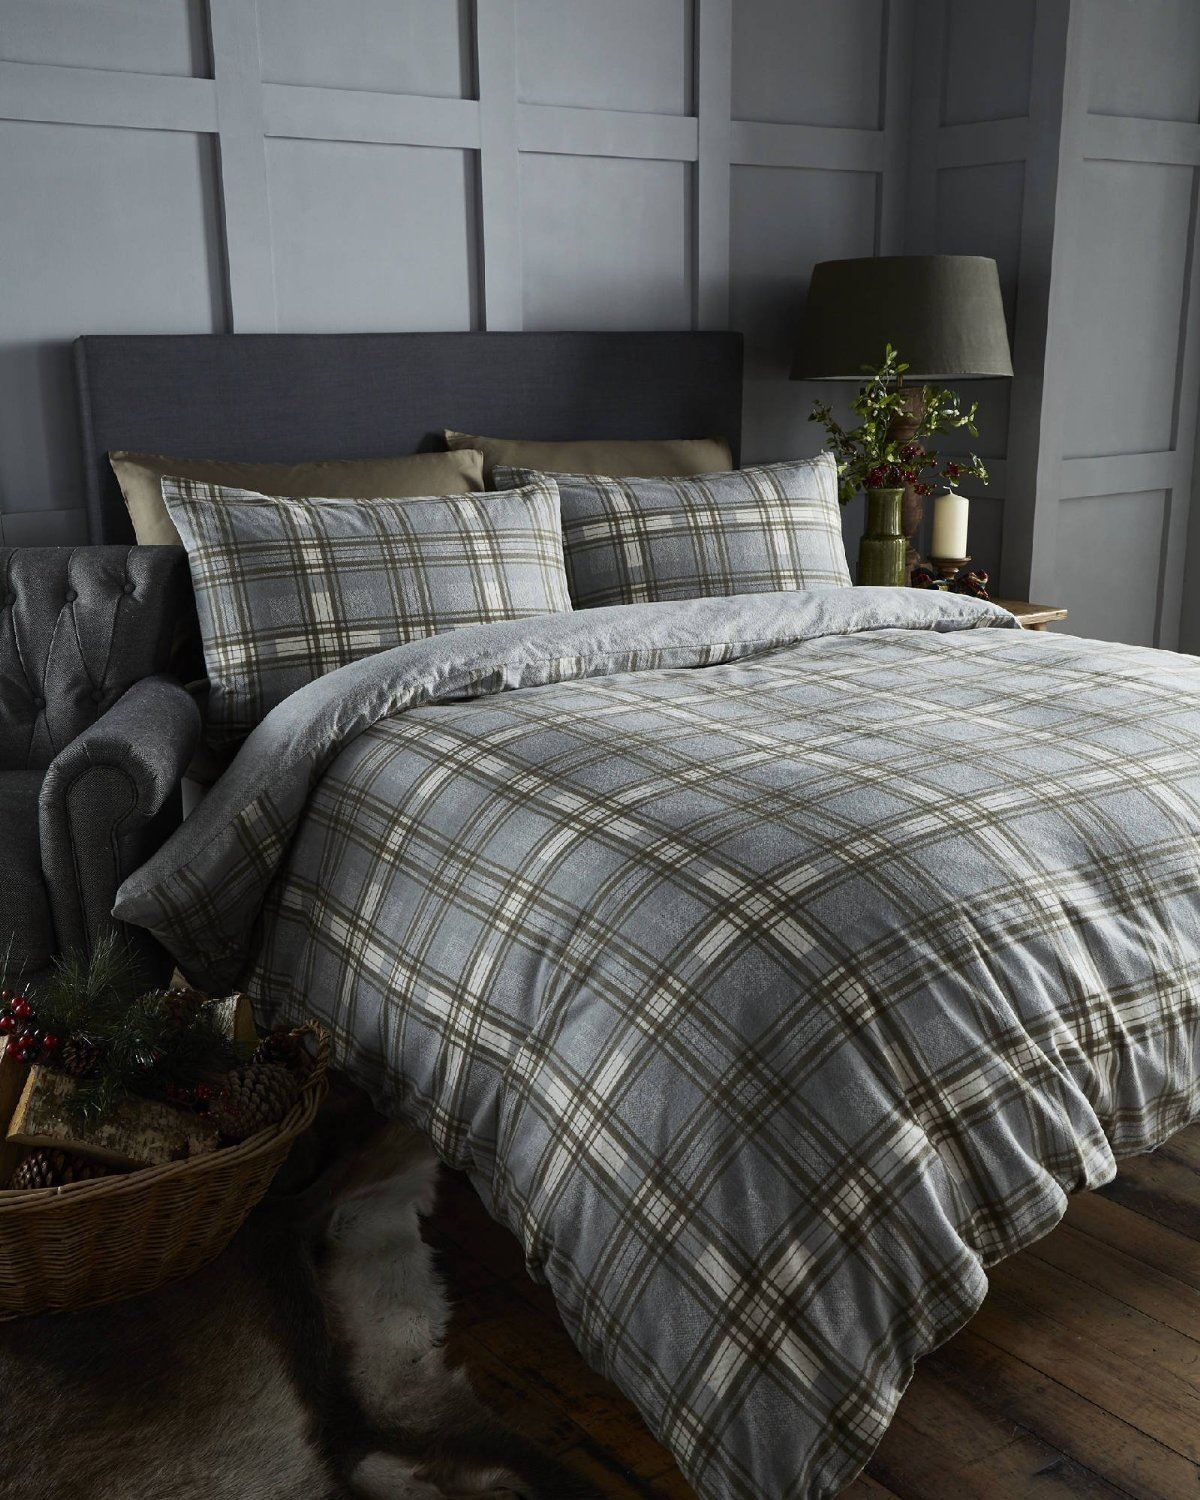 100 brushed cotton tartan quilt duvet cover pillowcase. Black Bedroom Furniture Sets. Home Design Ideas